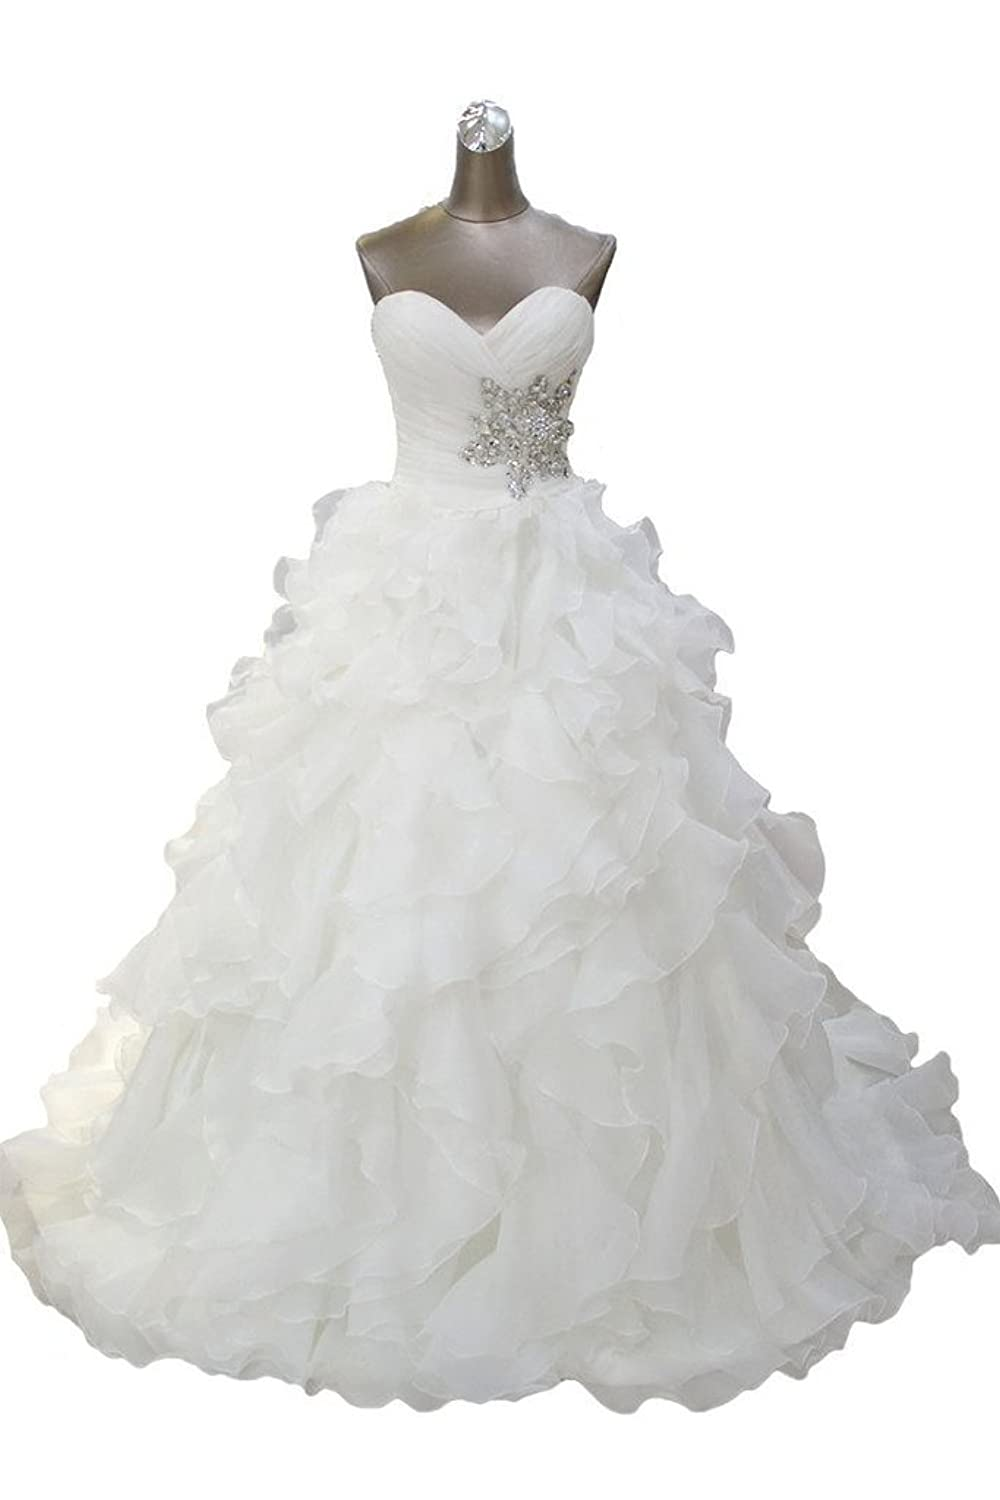 Ebelz Winter Women's Ruffle Laces A-line Wedding Dress Bridal Gown Size 24W